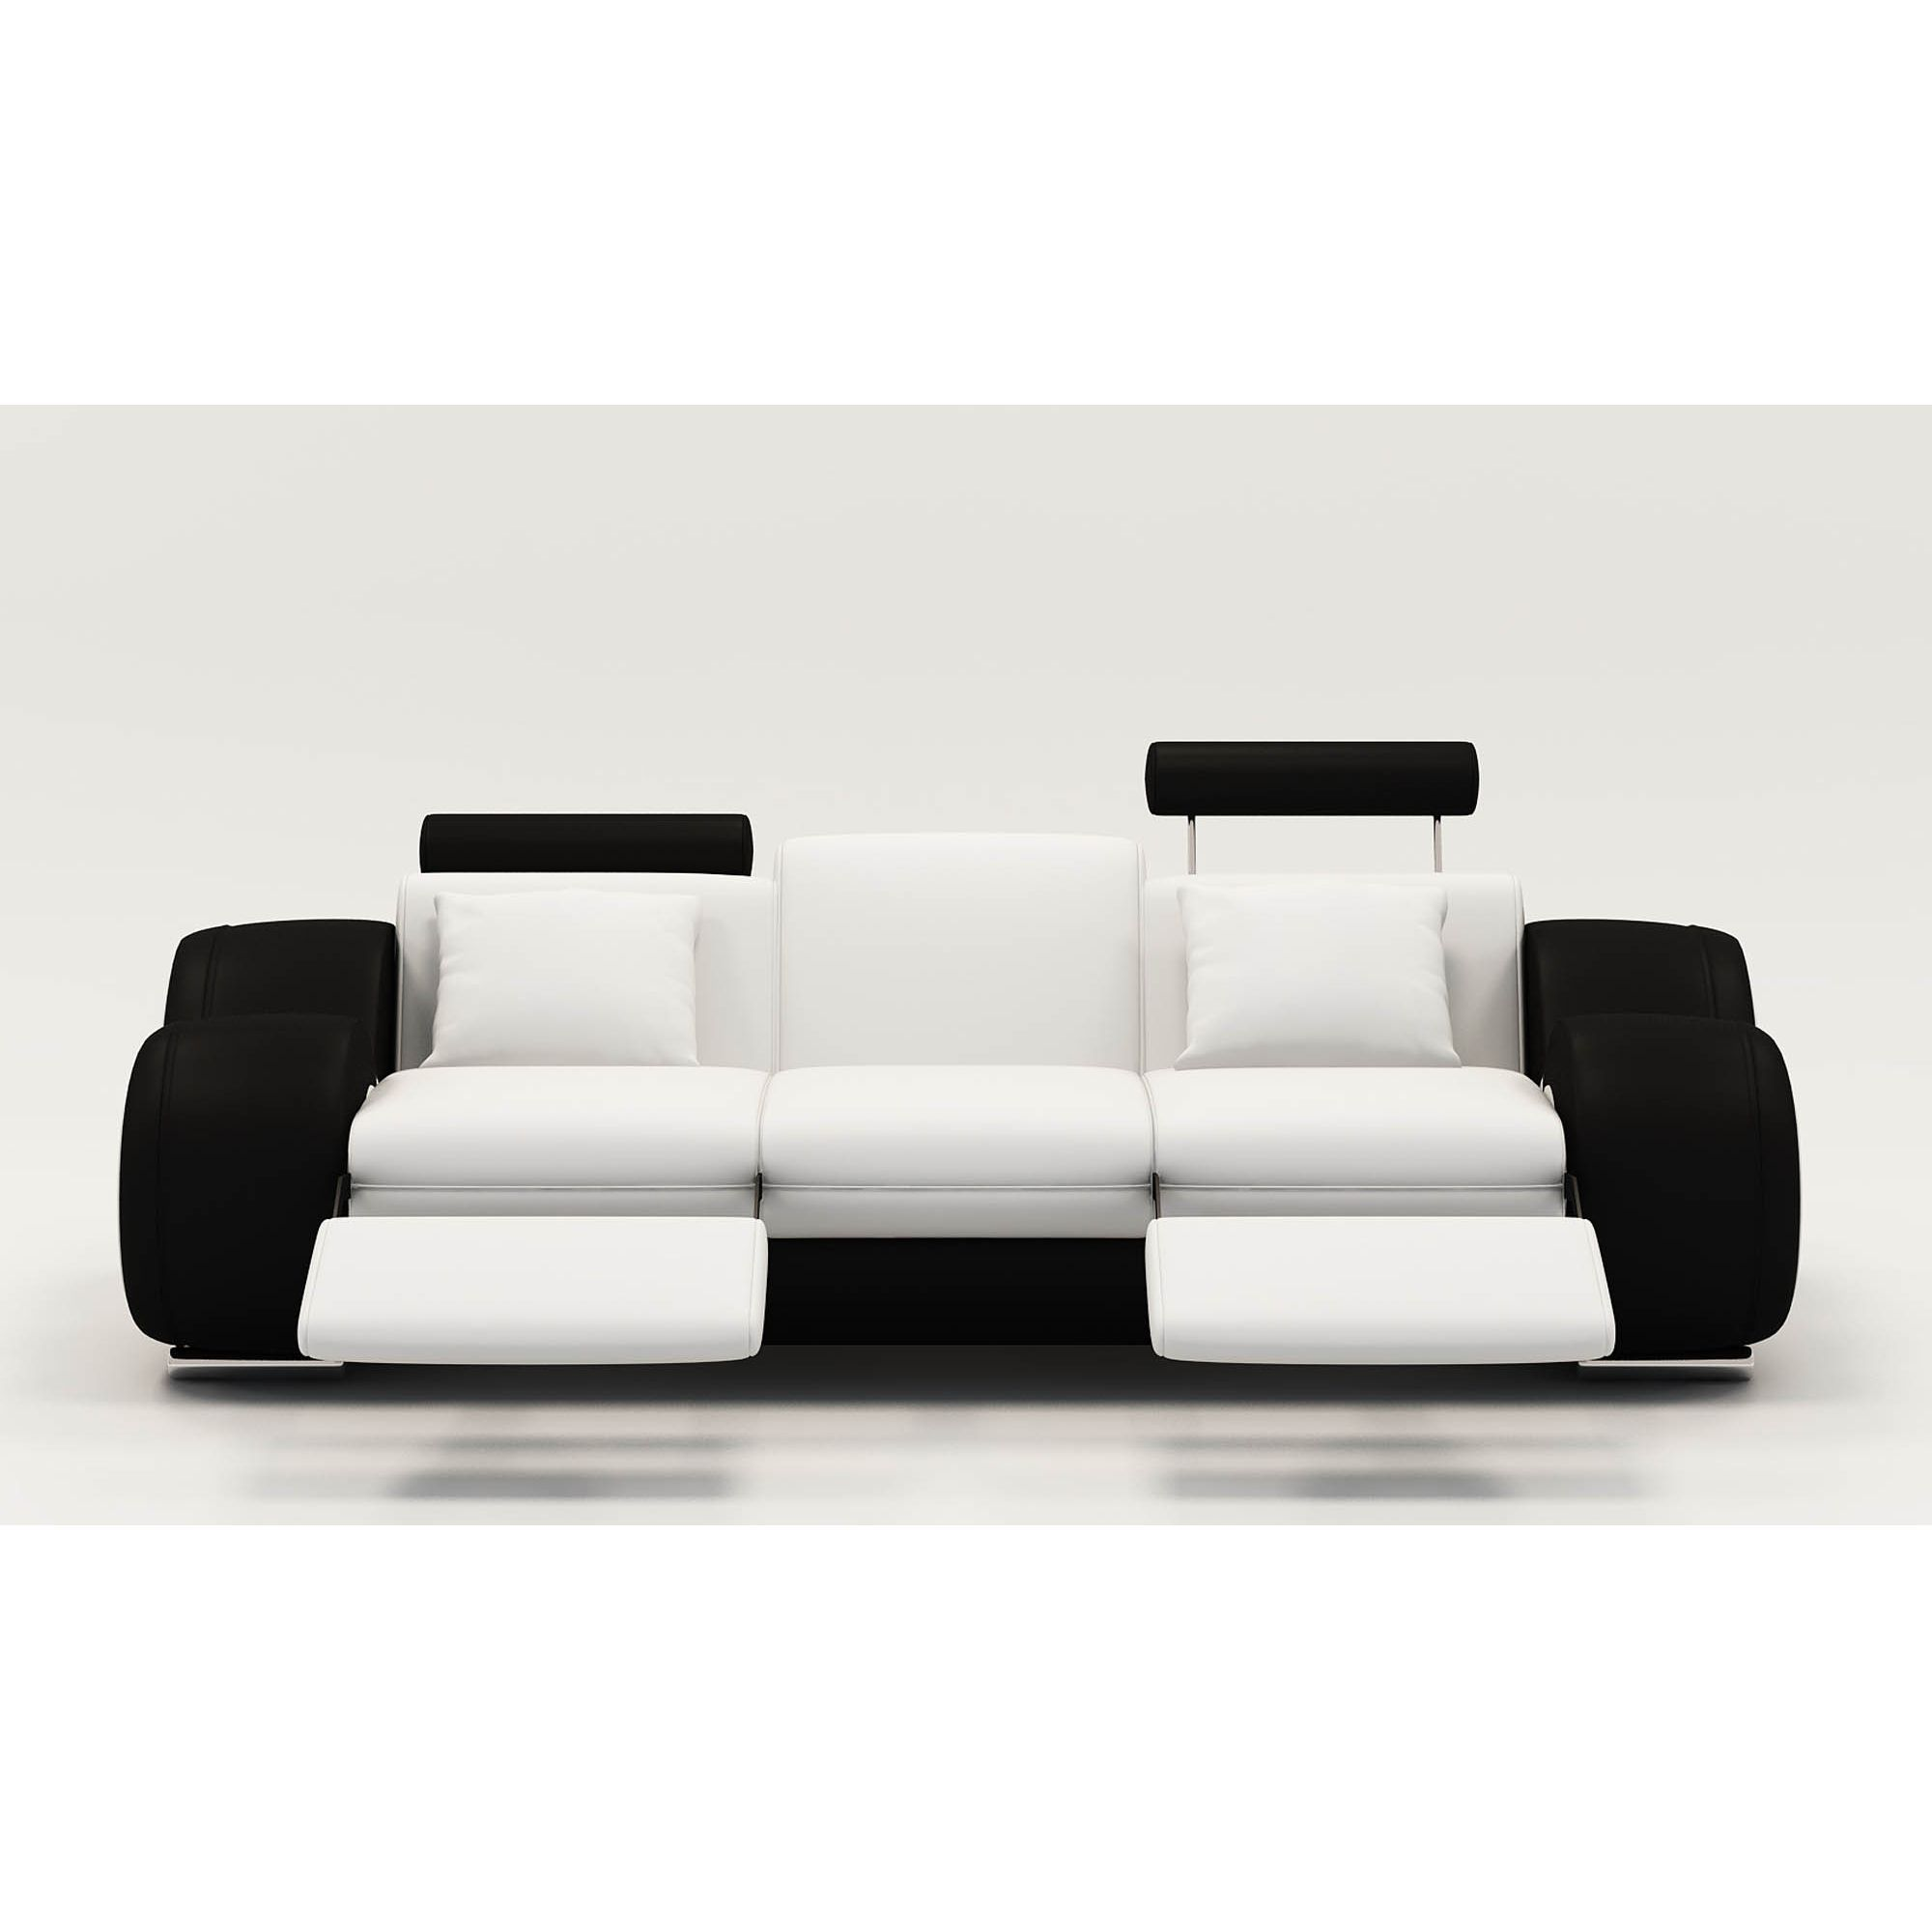 Deco in paris ensemble canape relax design 3 2 1 places for Salon noir rouge et blanc